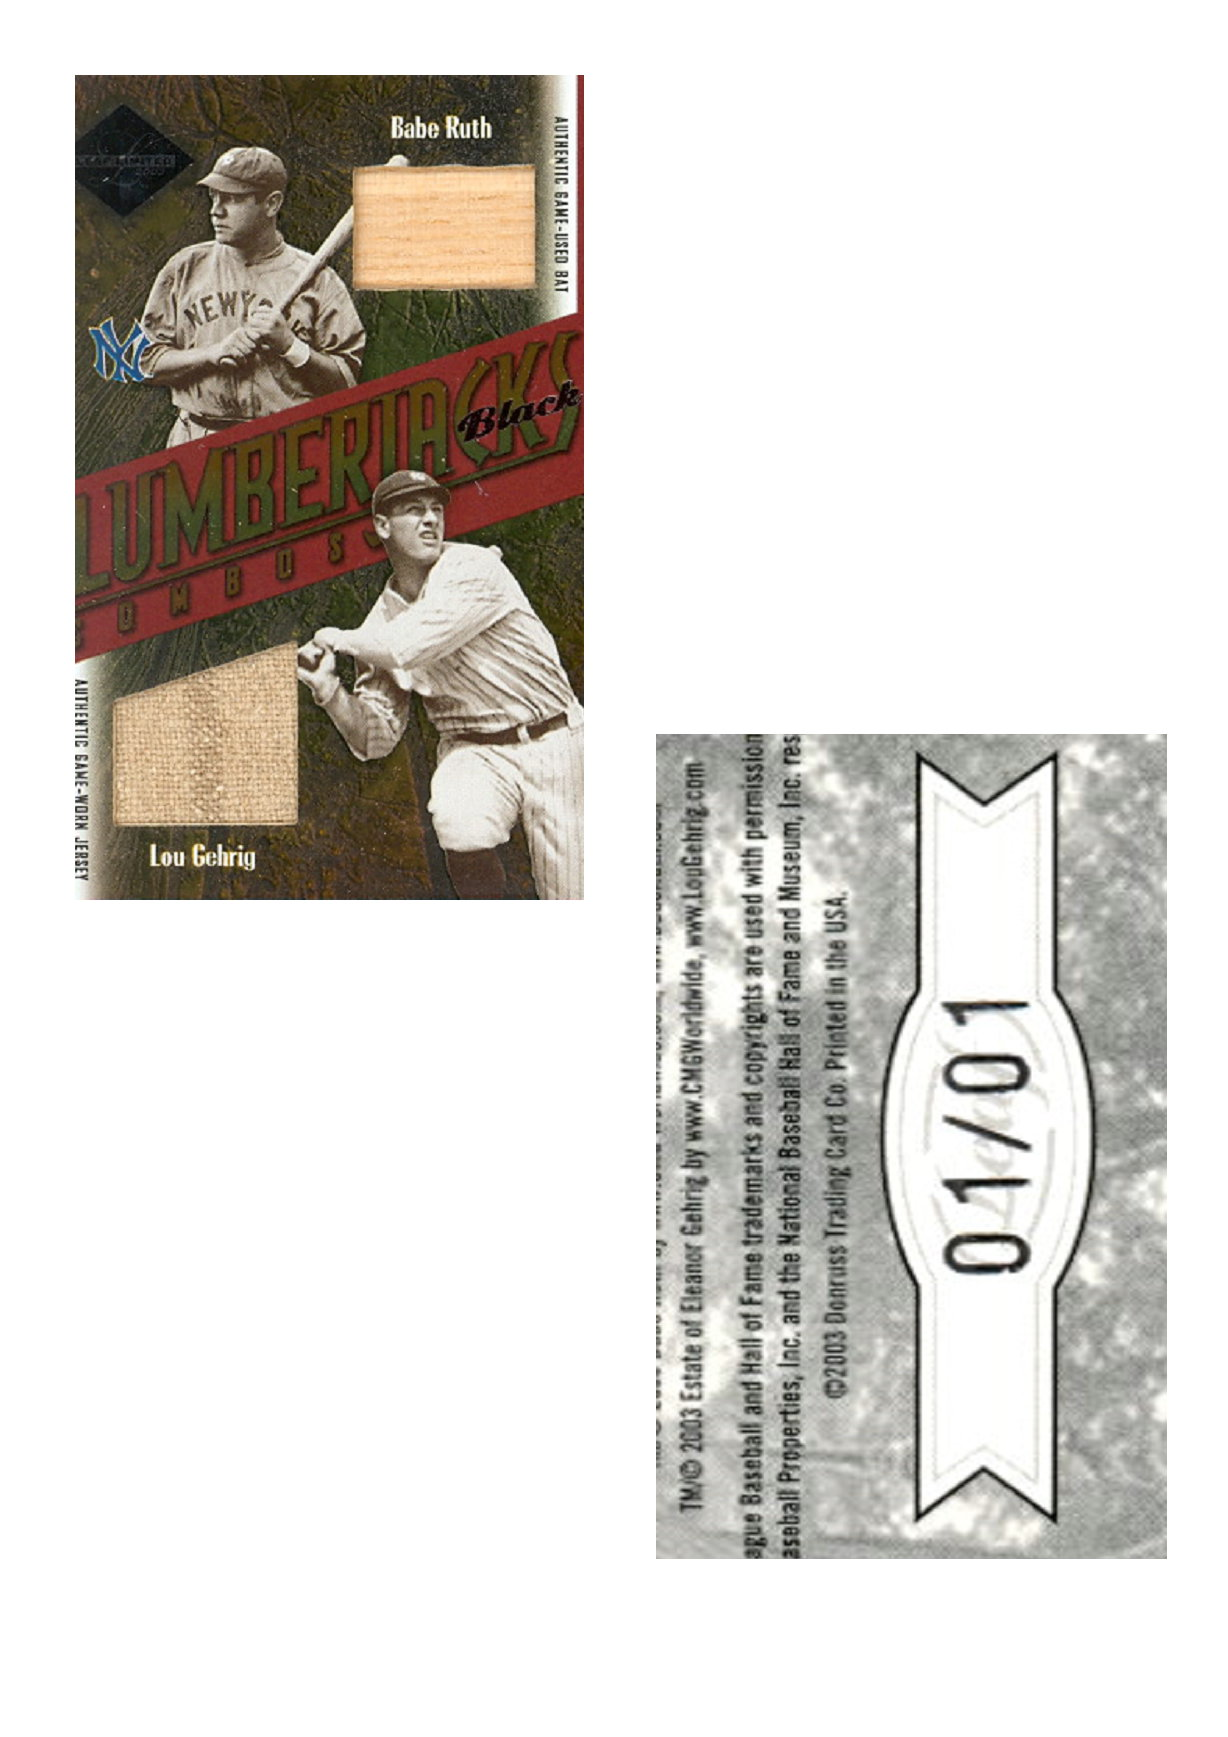 2003 Leaf Limited Lumberjacks Bat-Jersey Black #45B Babe Ruth Bat/Lou Gehrig Jsy/1